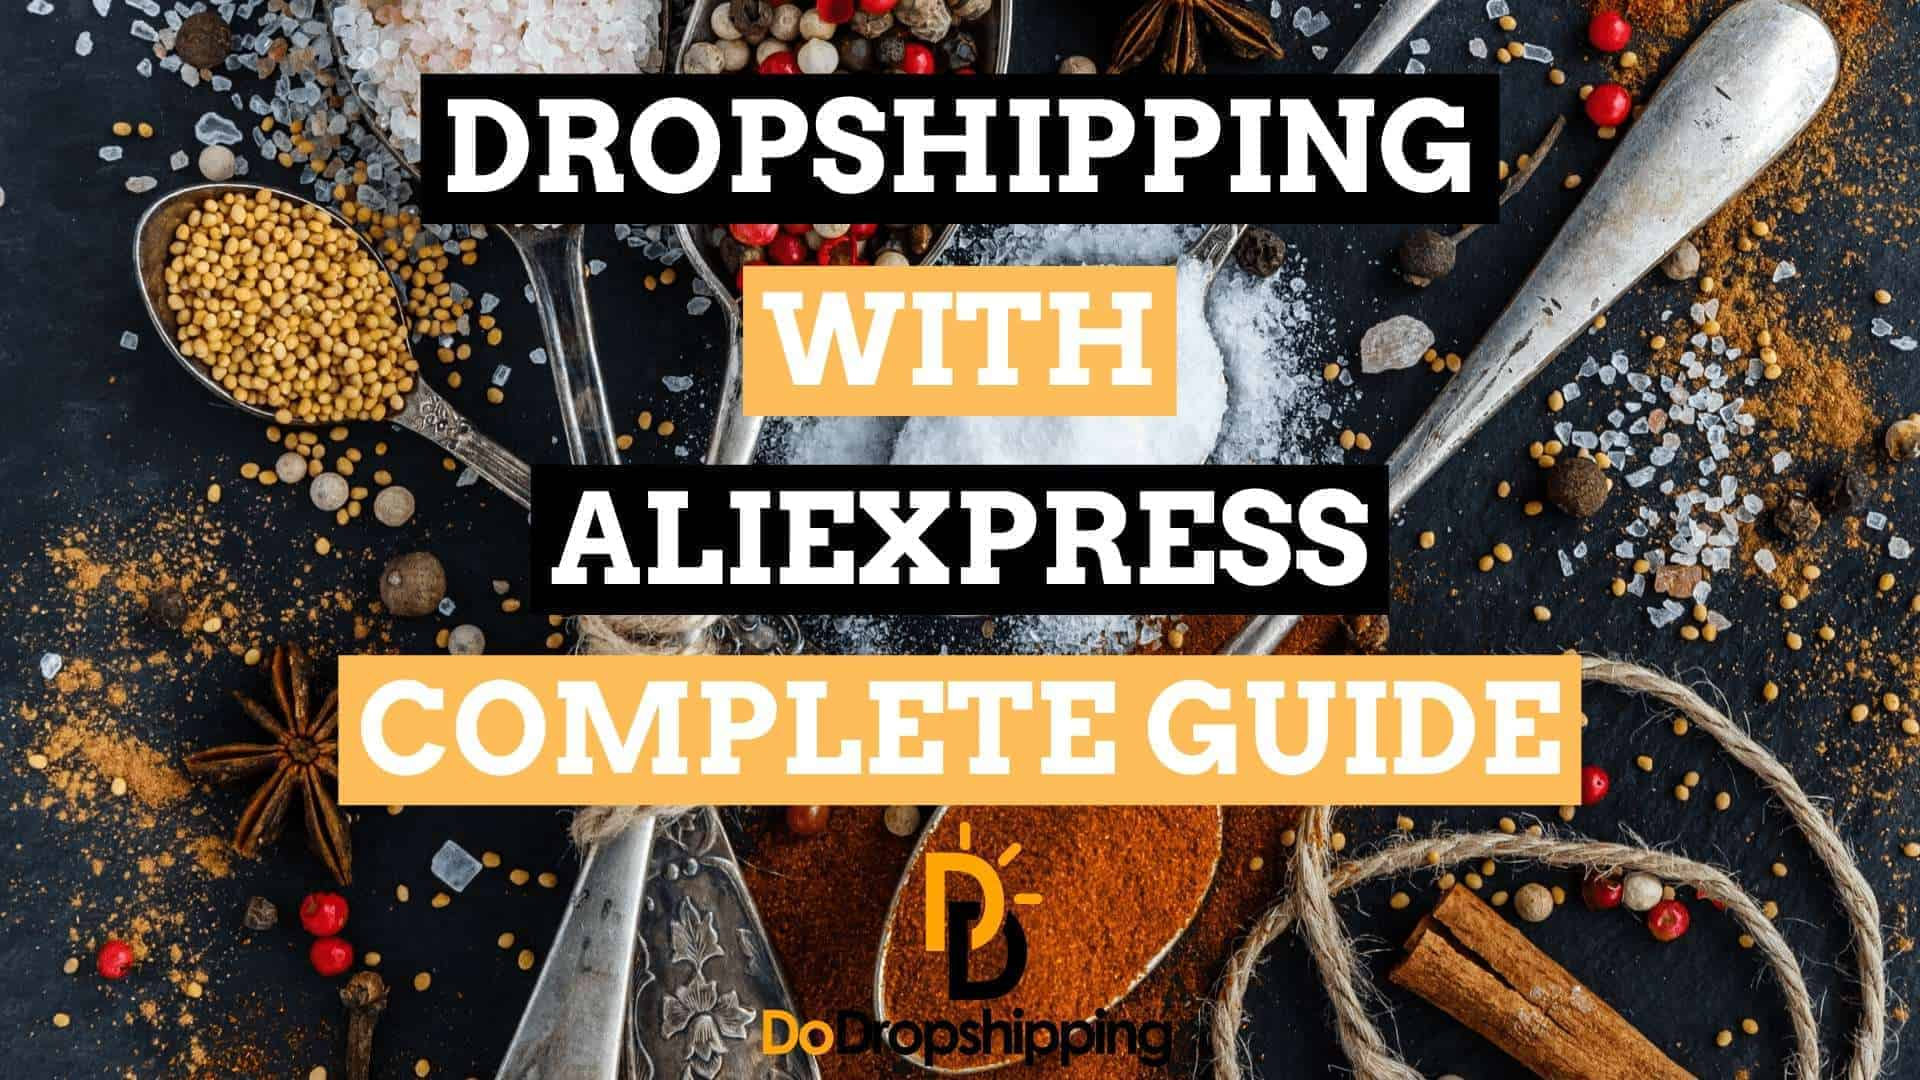 AliExpress Dropshipping Complete Guide 2019: Perfect for Beginners